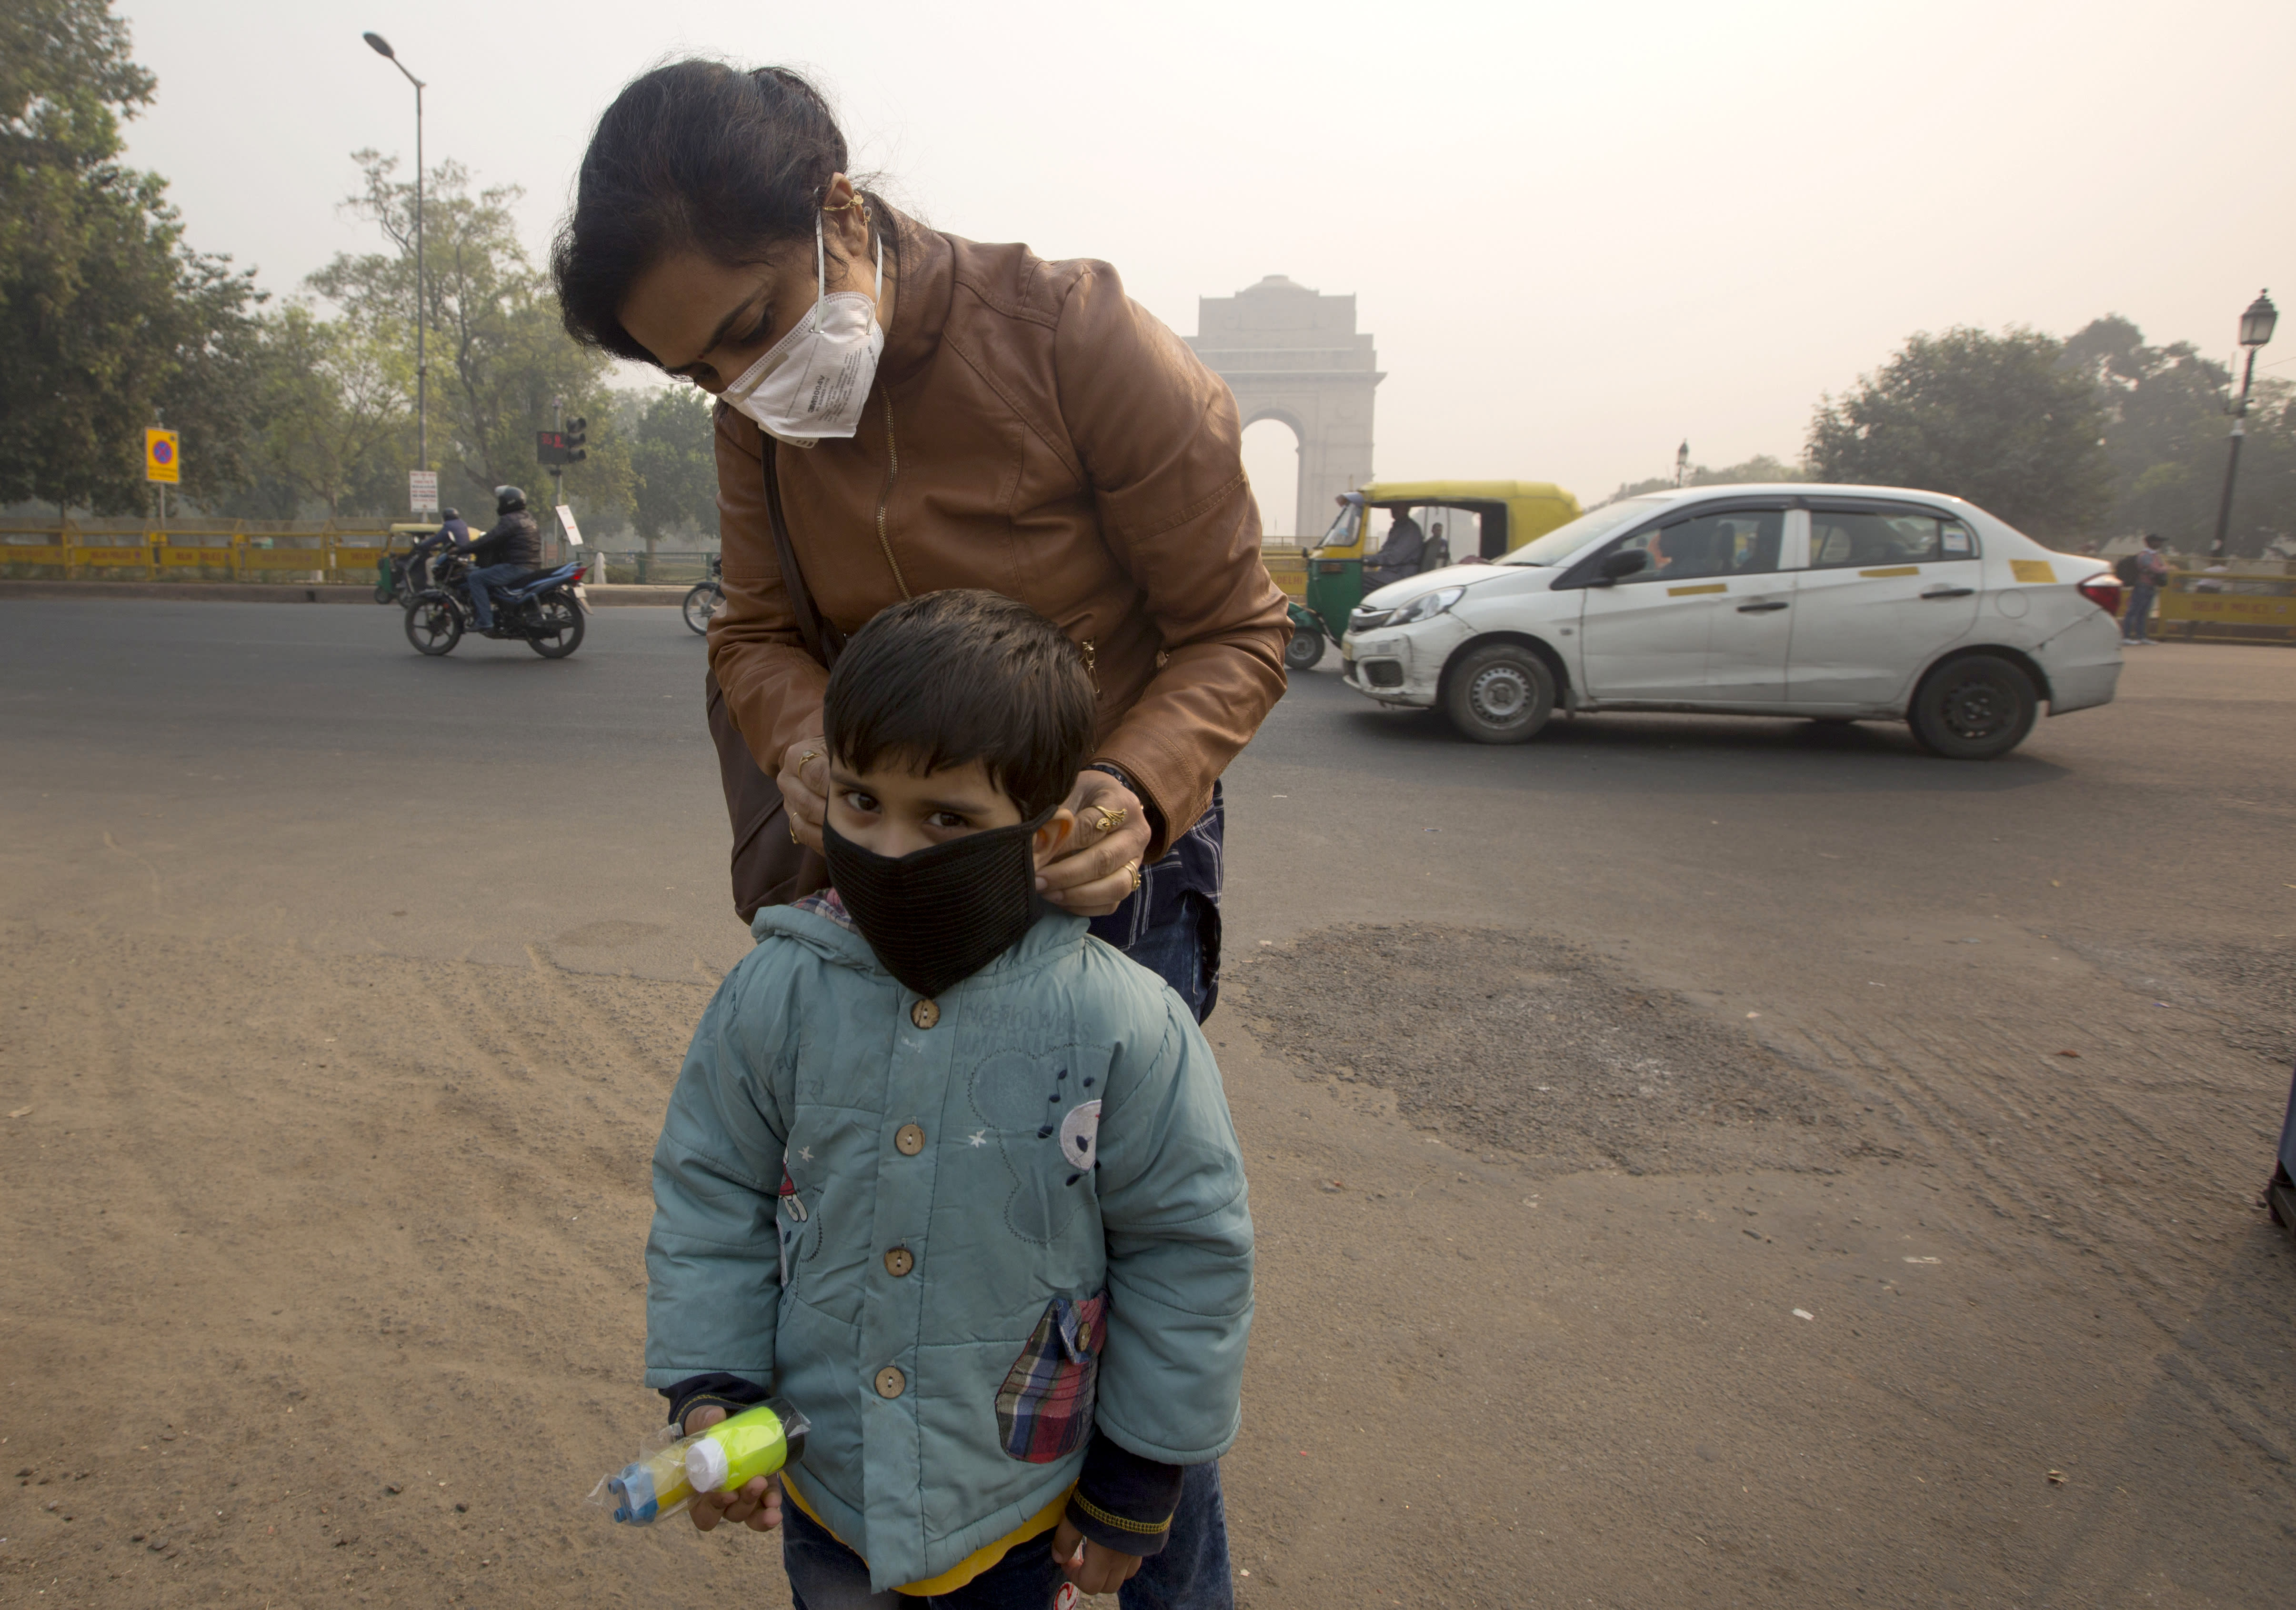 An Indian mother puts a mask to her son a day after Diwali festival in New Delhi, India, Thursday, Nov. 8, 2018. Toxic smog shrouds the Indian capital as air quality falls to hazardous levels with tens of thousands of people setting off massive firecrackers to celebrate the major Hindu festival of Diwali on Wednesday night. (AP Photo/Manish Swarup)